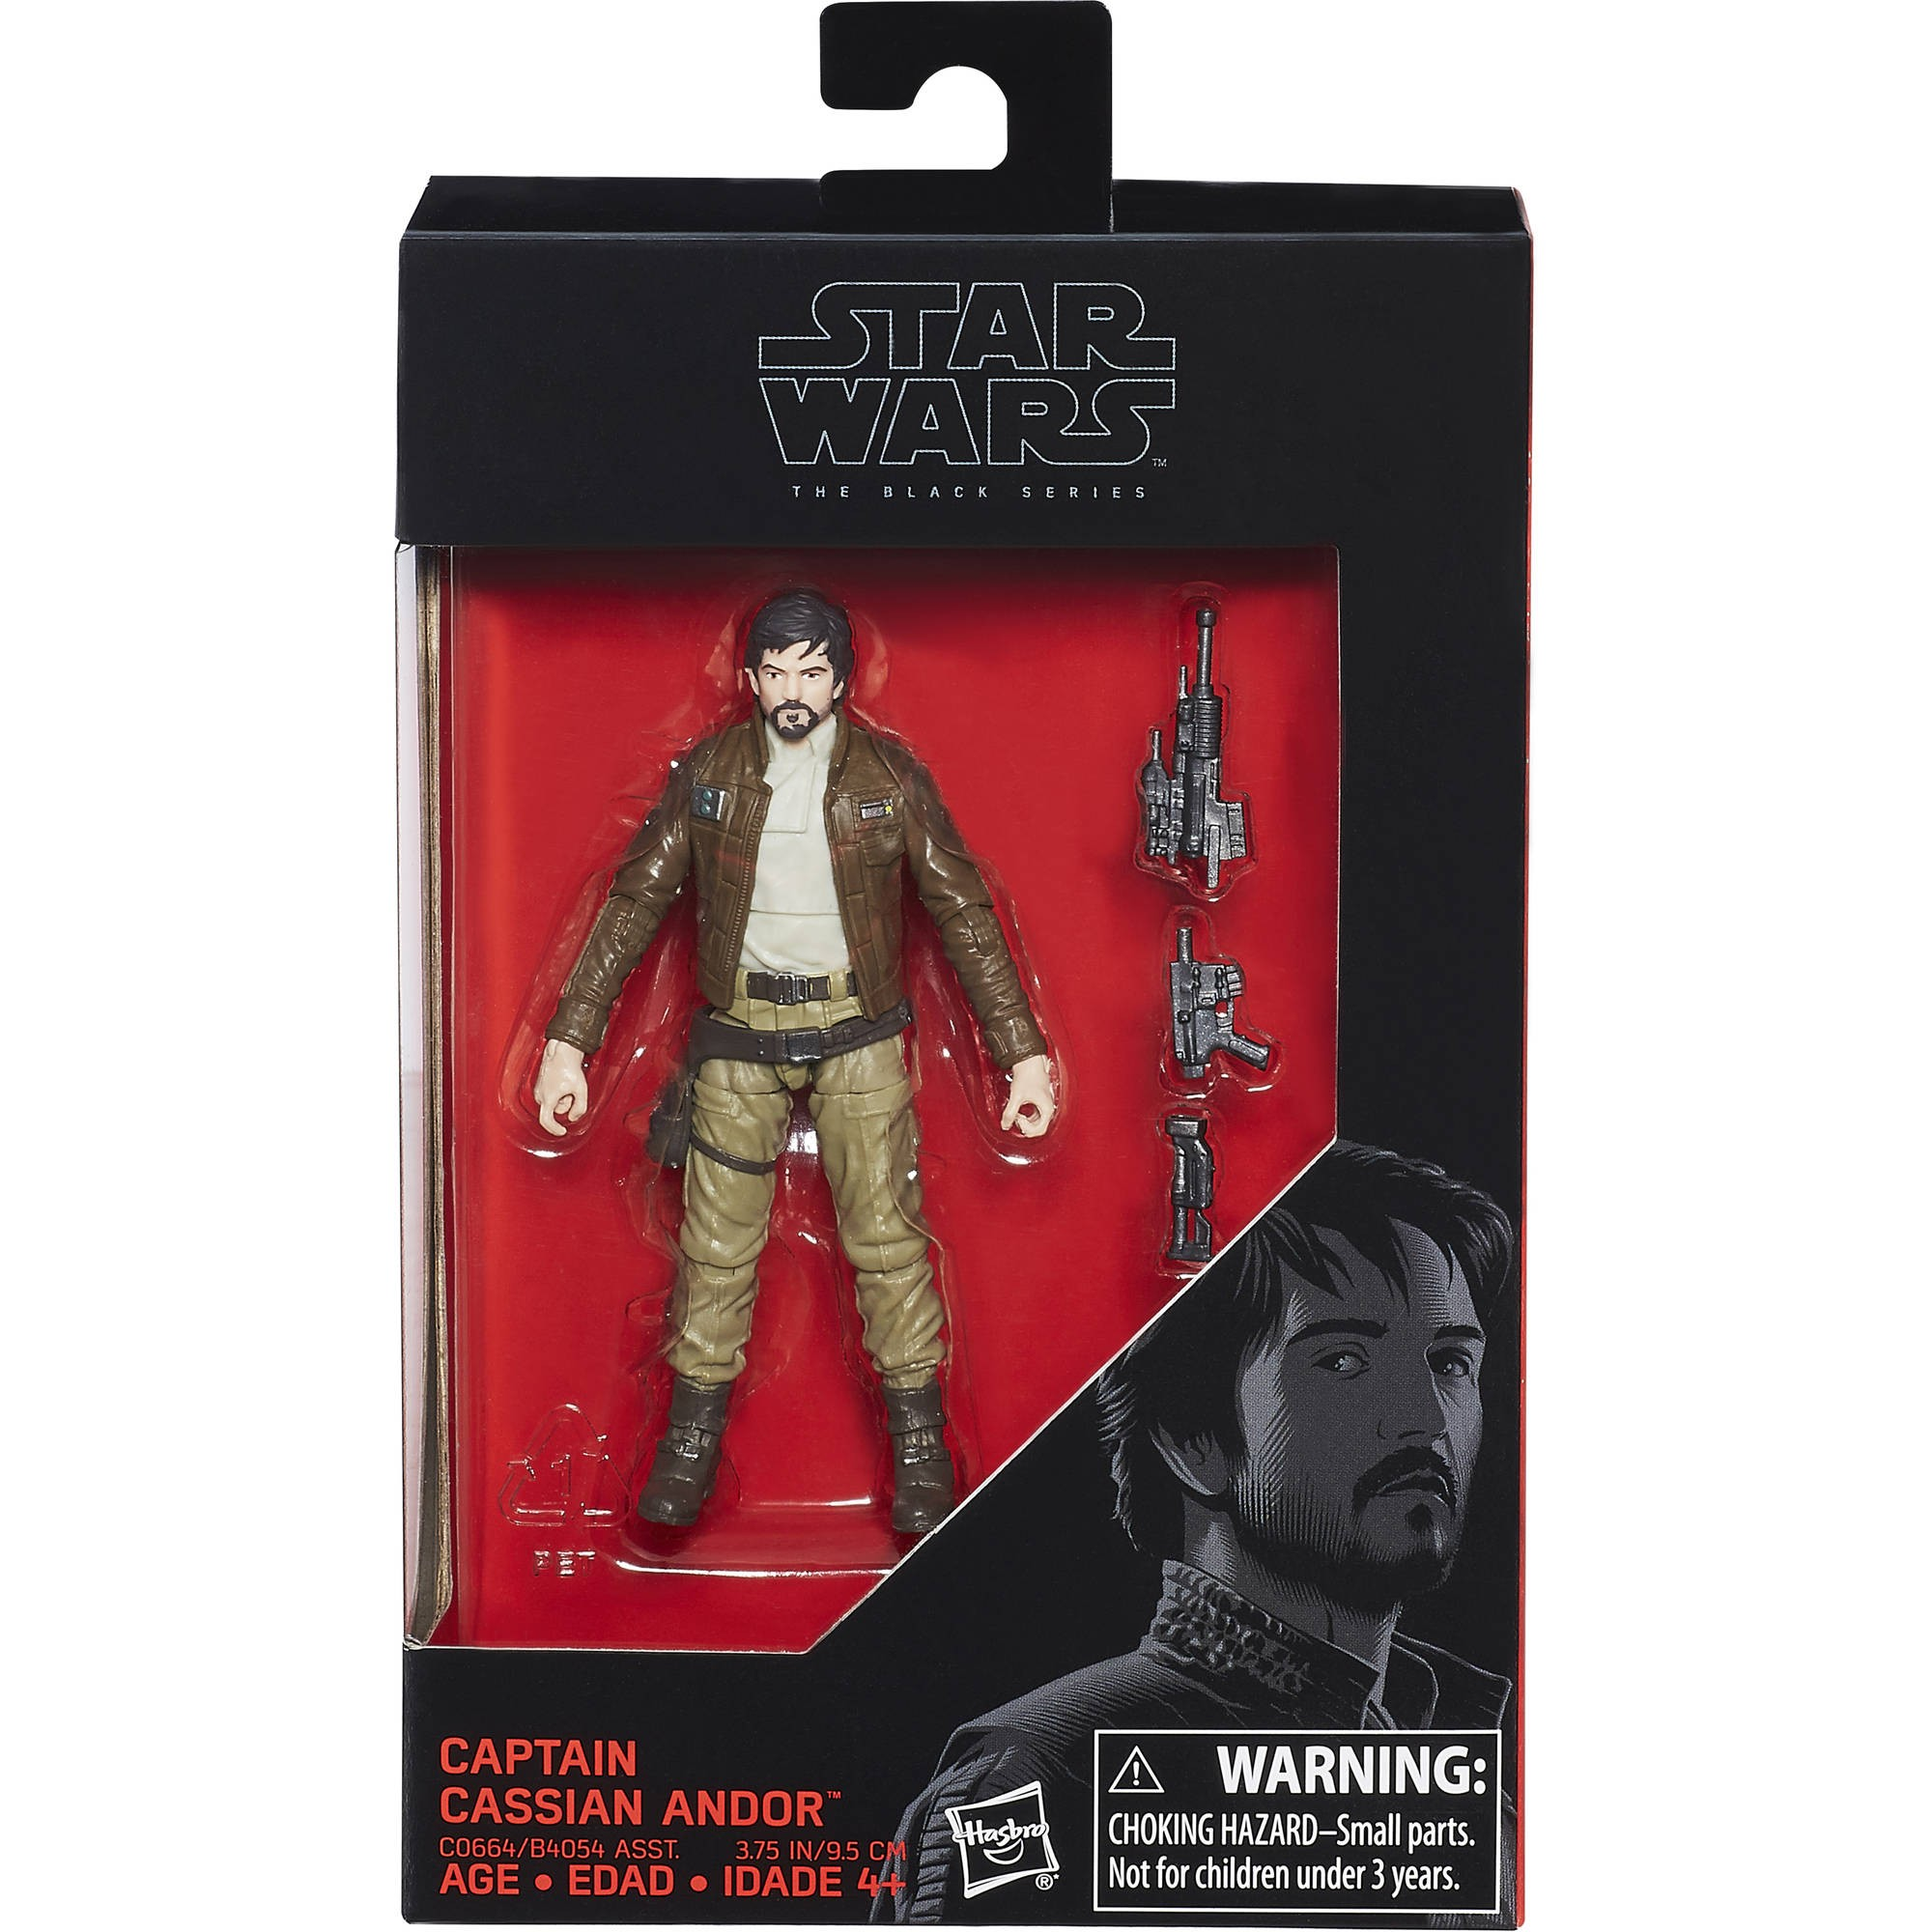 Star Wars Rogue One 12 pouces capitaine Cassien Andor